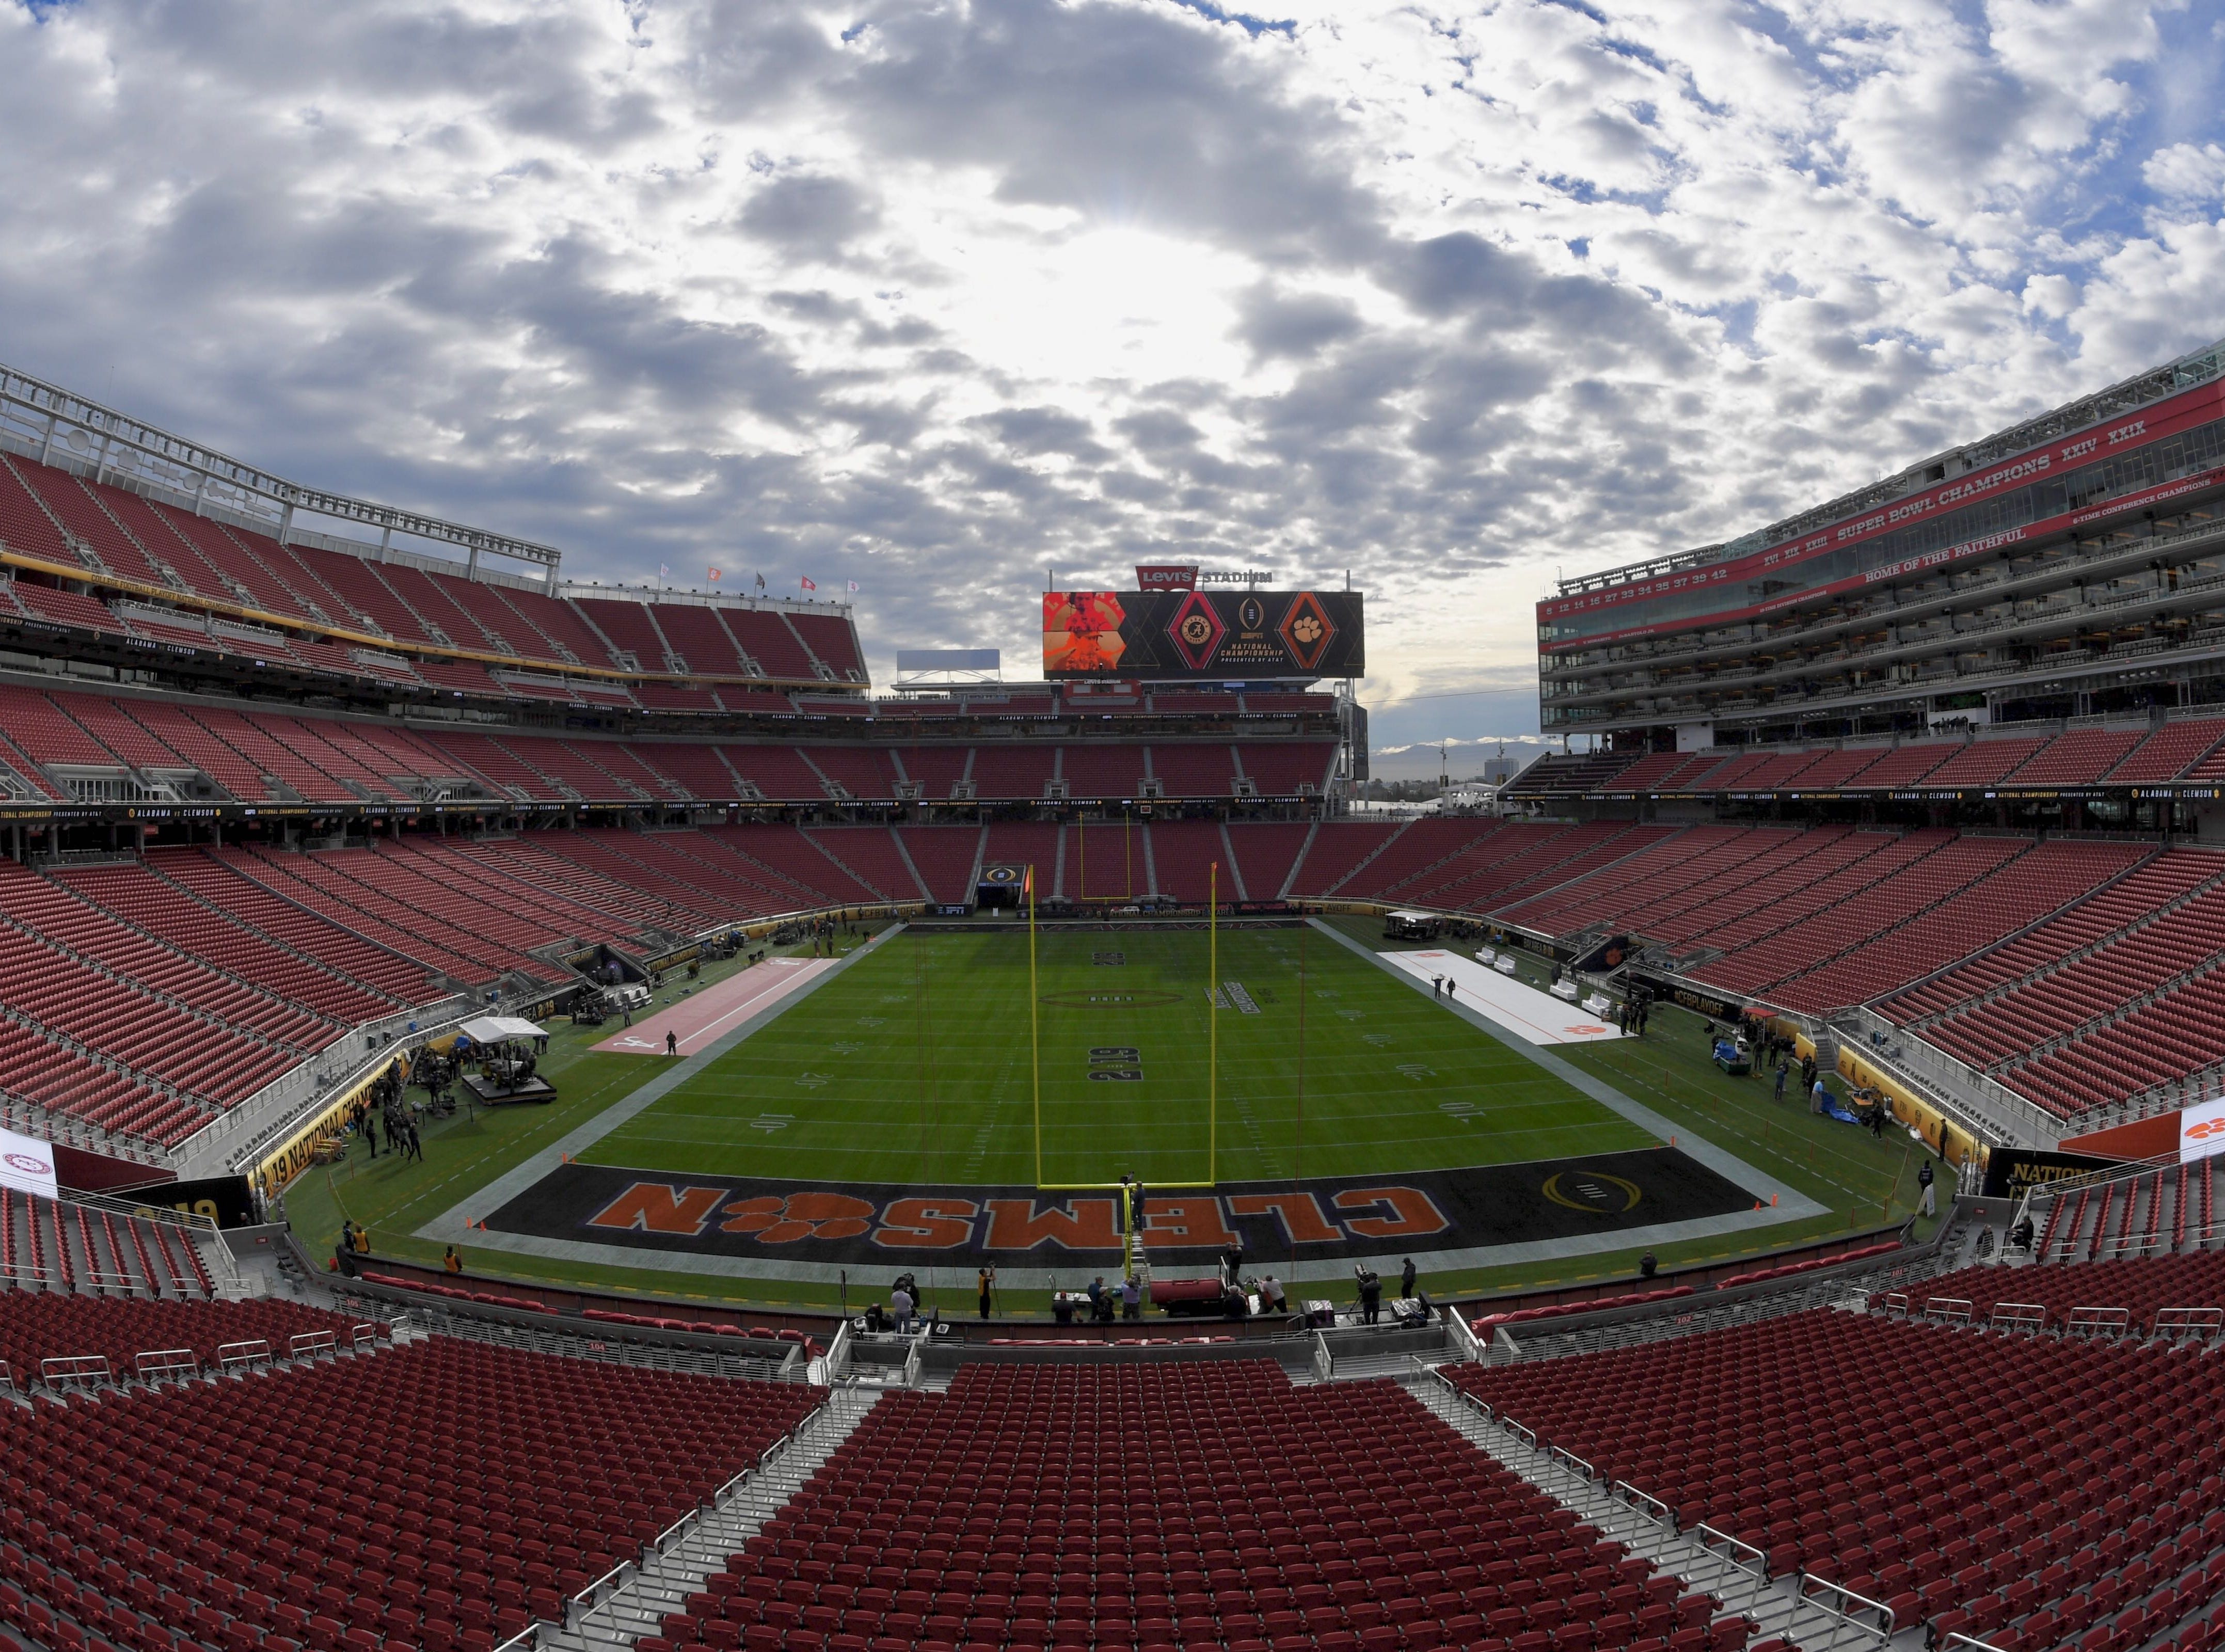 Sunshine filters through the clouds at Levi's Stadium in Santa Clara, California, on Monday, Dec. 7, 2018, hours before No. 2 Clemson and No. 1 Alabama battle in the National Championship Game of the College Football Playoff.